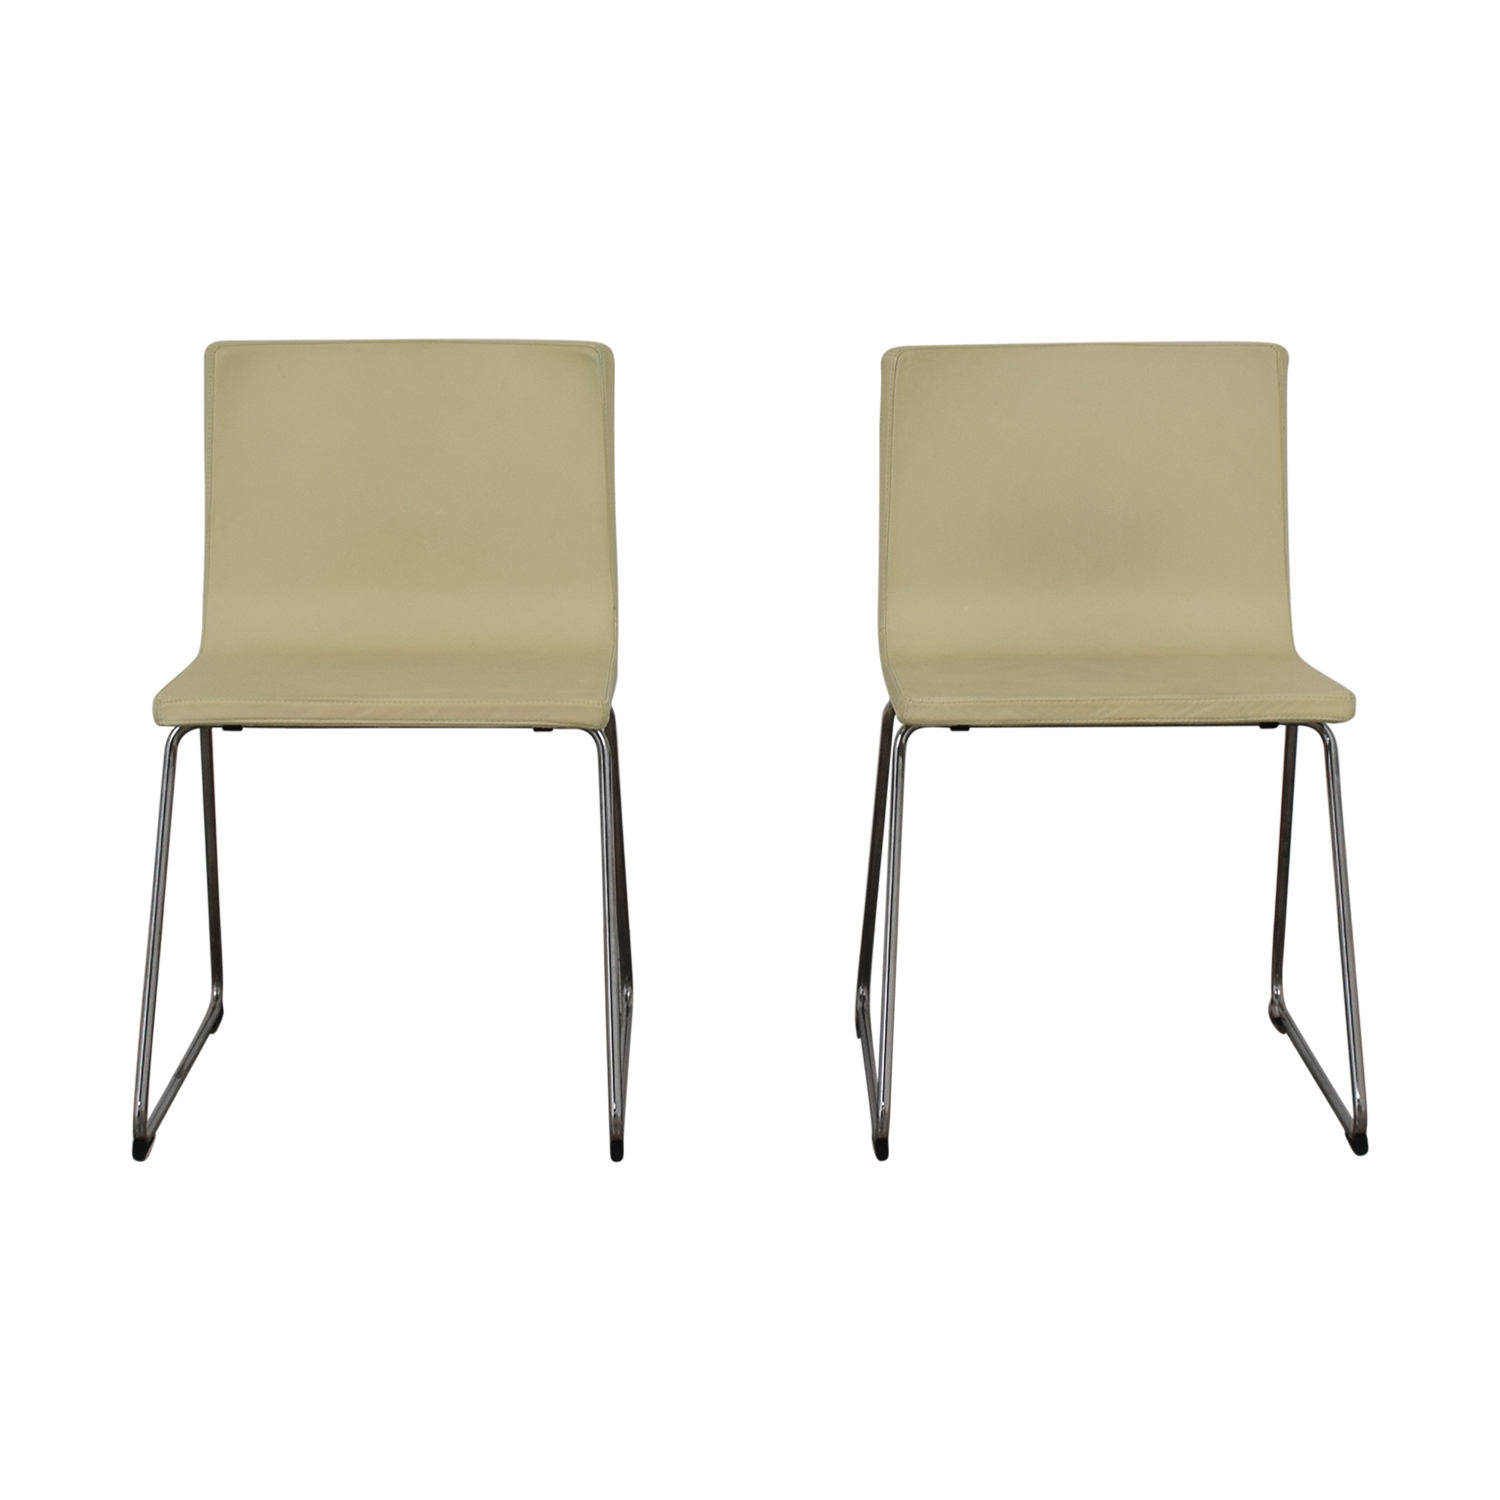 IKEA IKEA Bernhard Leather Dining Chairs Chairs ...